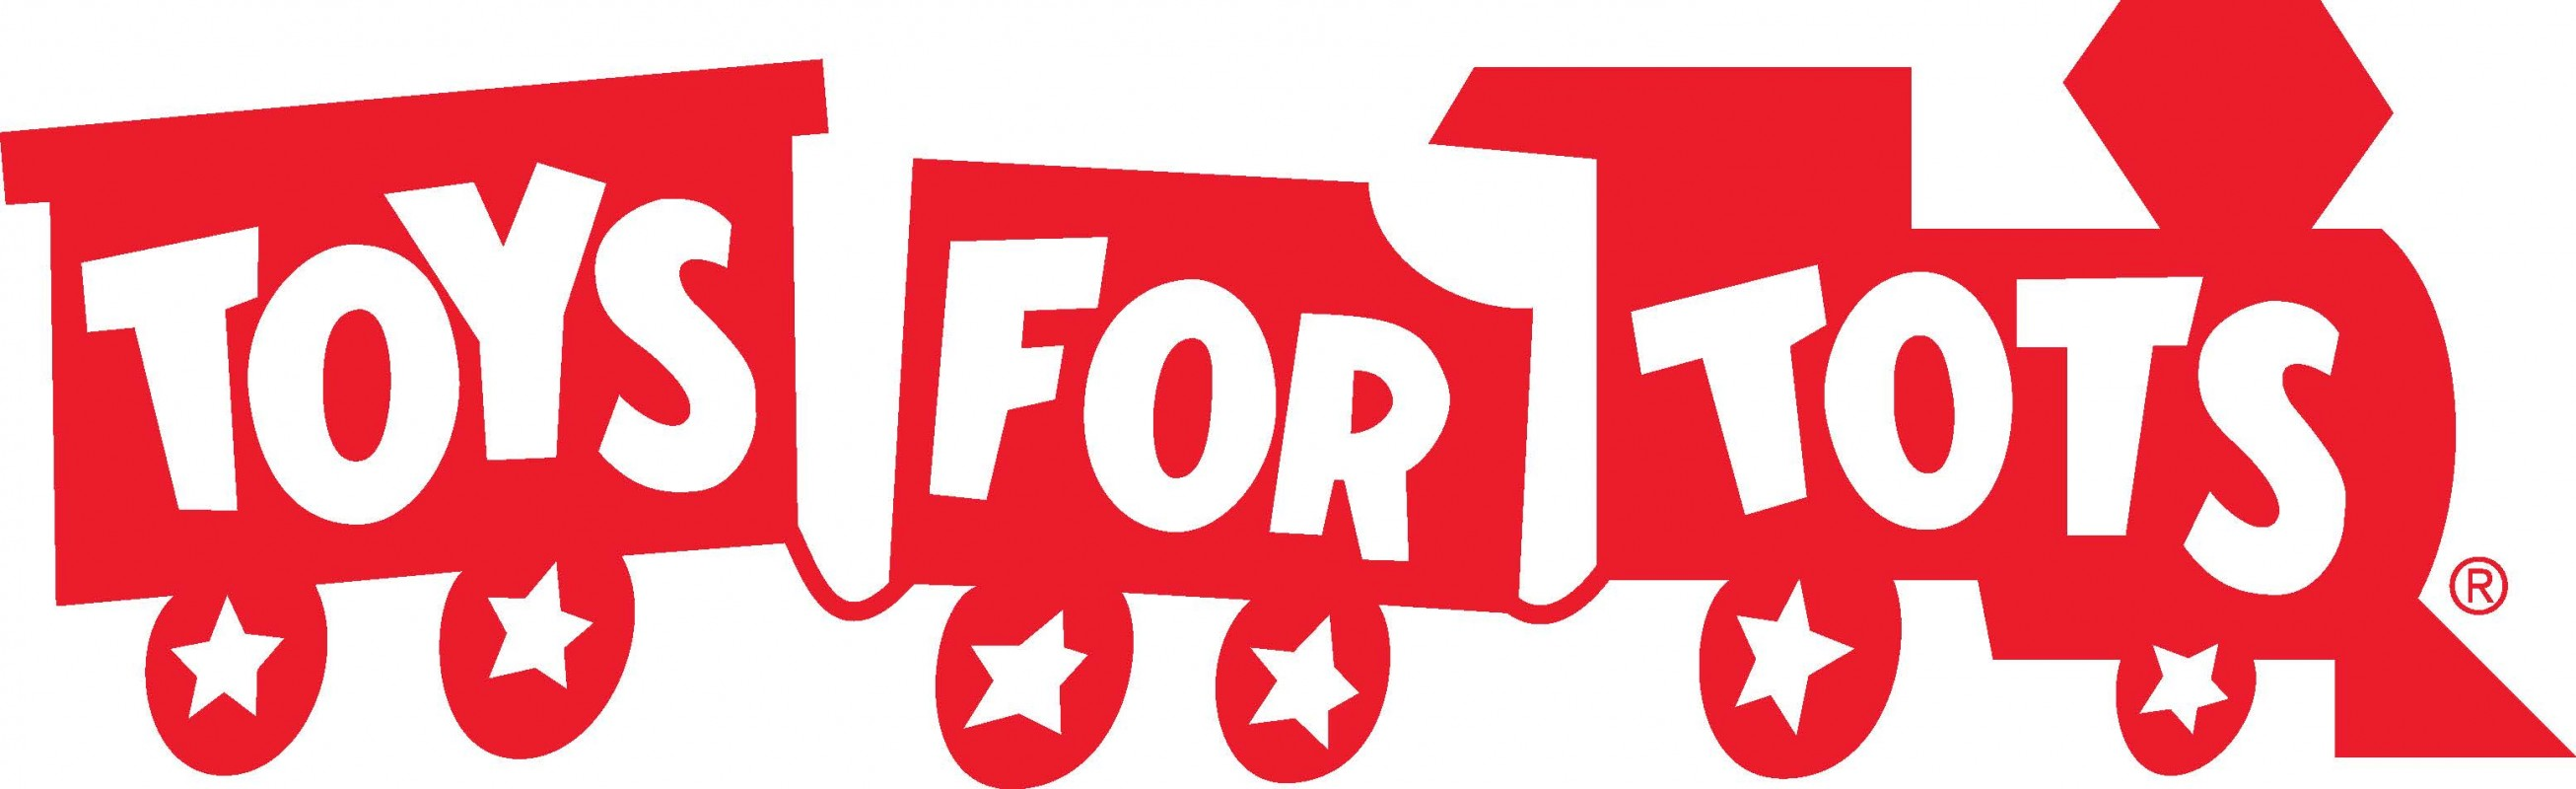 tucson toys for tots logo